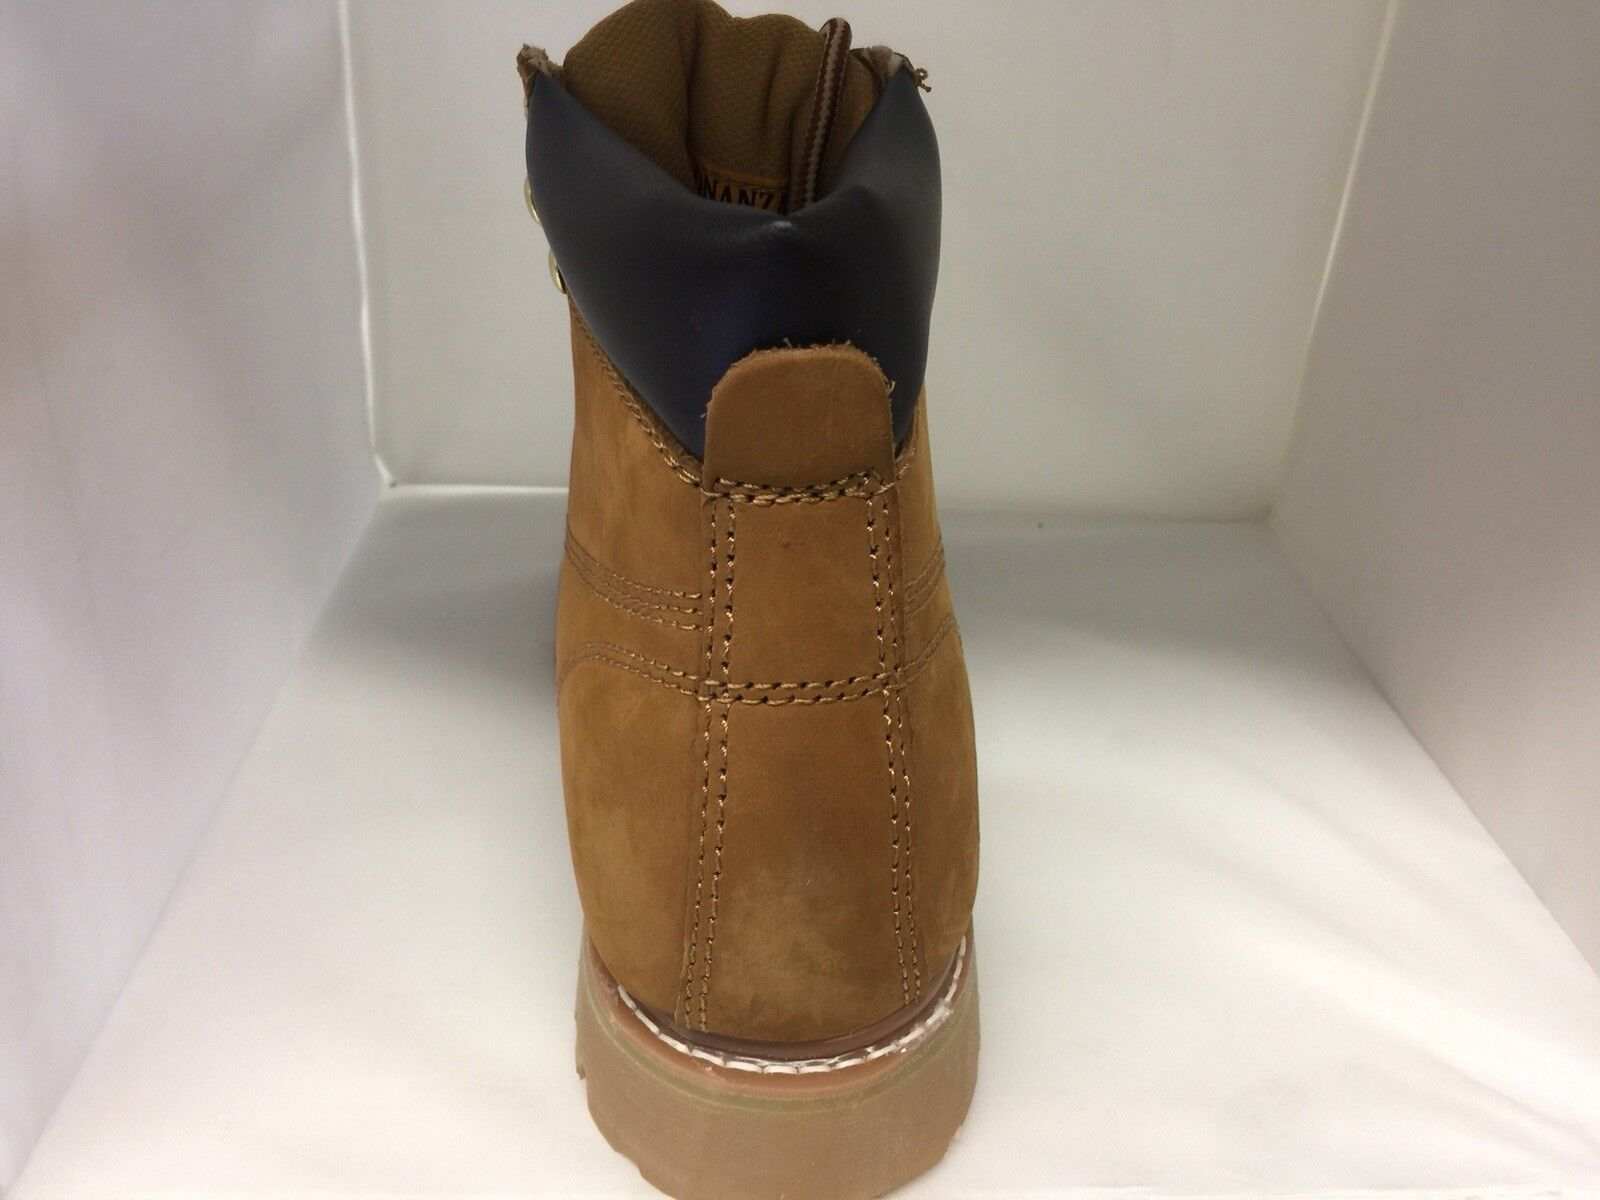 Bonanza Uomo Size 11, Goodyear Tan Lace Up Round Toe BA610 Work Stivali BA610 Toe BRAND NEW. deca12